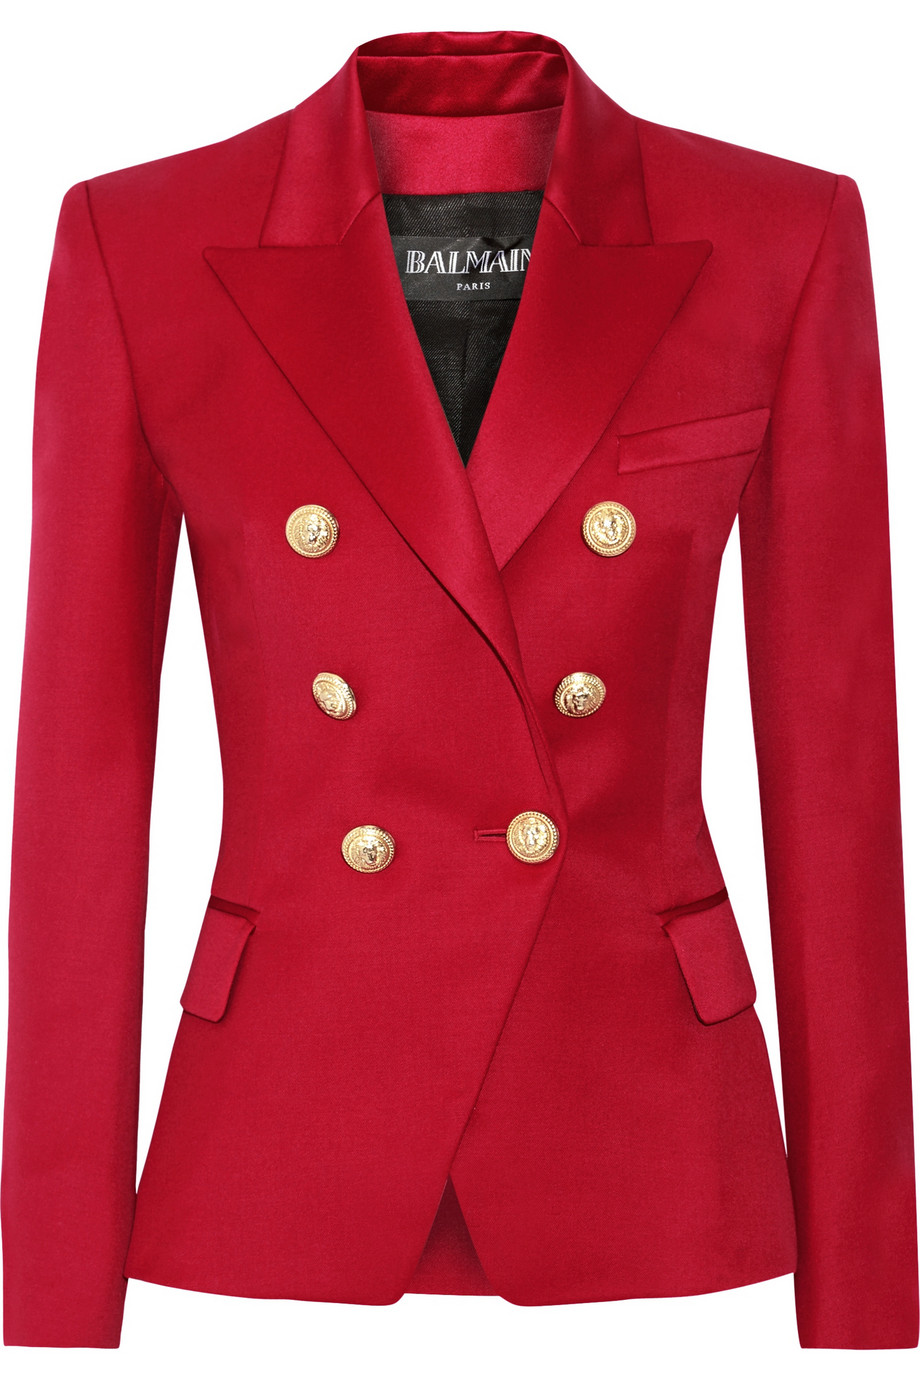 Balmain  jacket - was $2,385, now $1,431